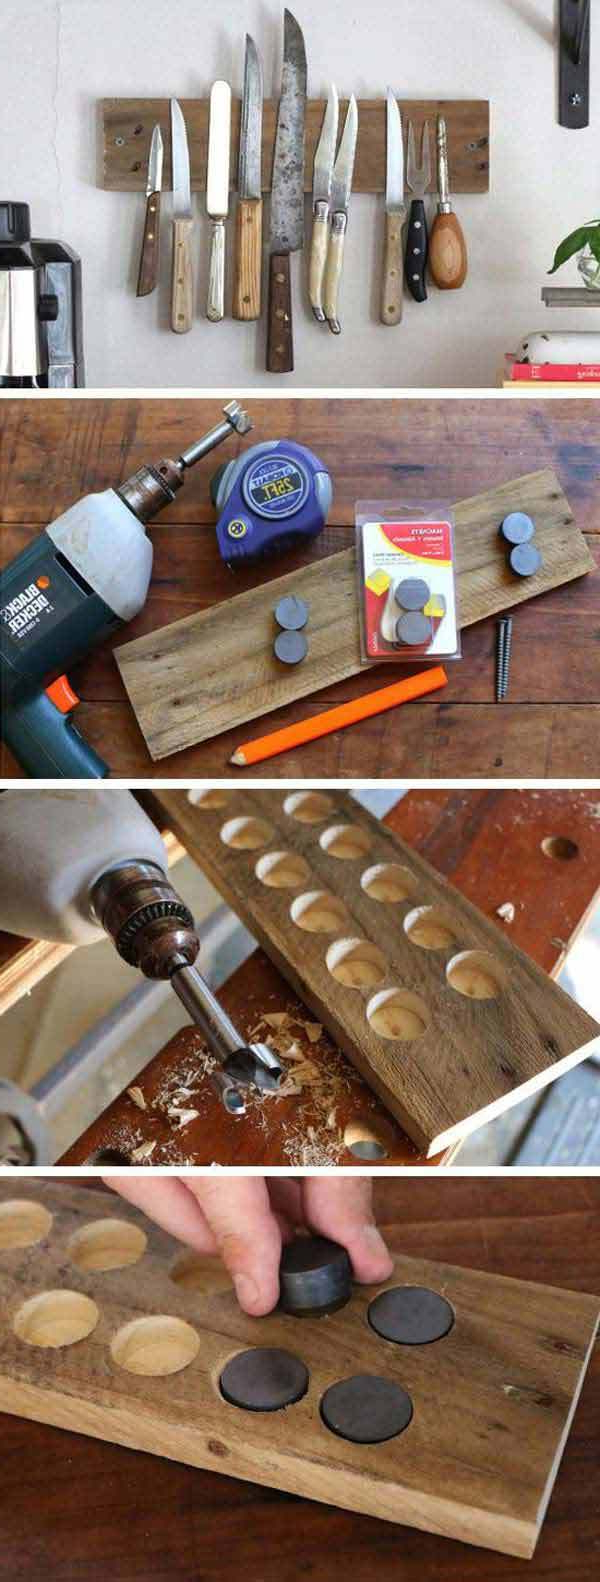 21 Super Smart And Ingenious Diy Projects To Realize At Home